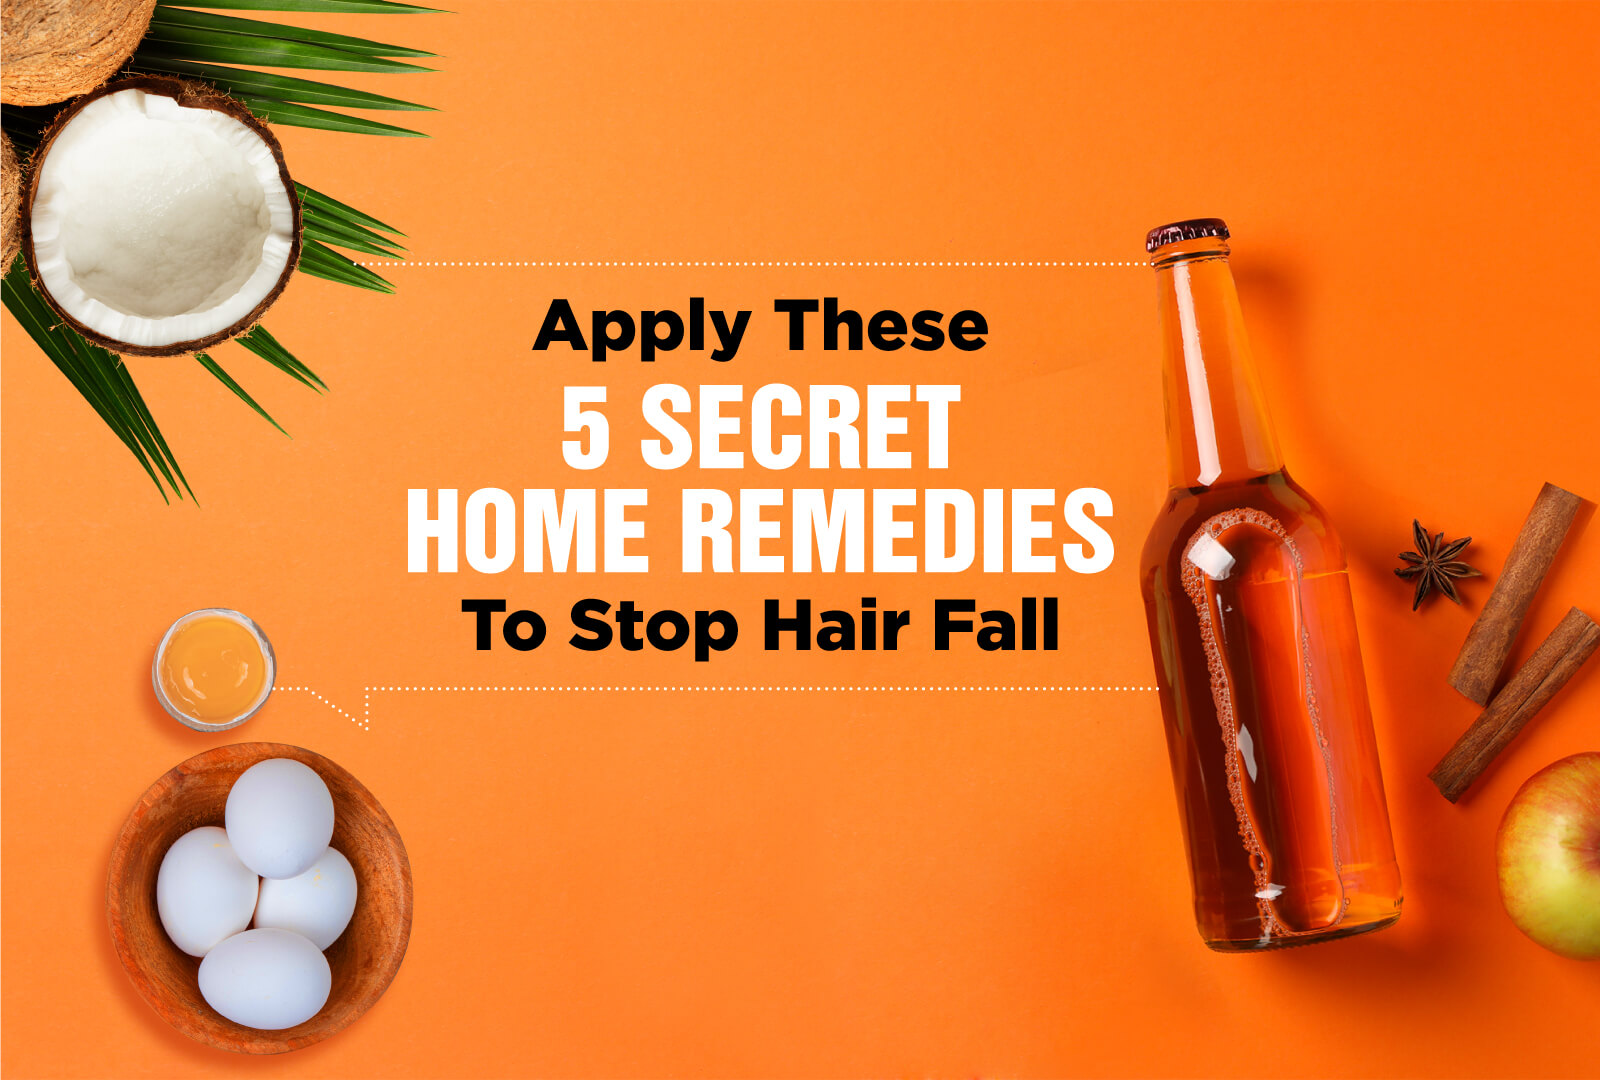 APPLY 5 SECRET HOME REMEDIES TO STOP HAIR FALL